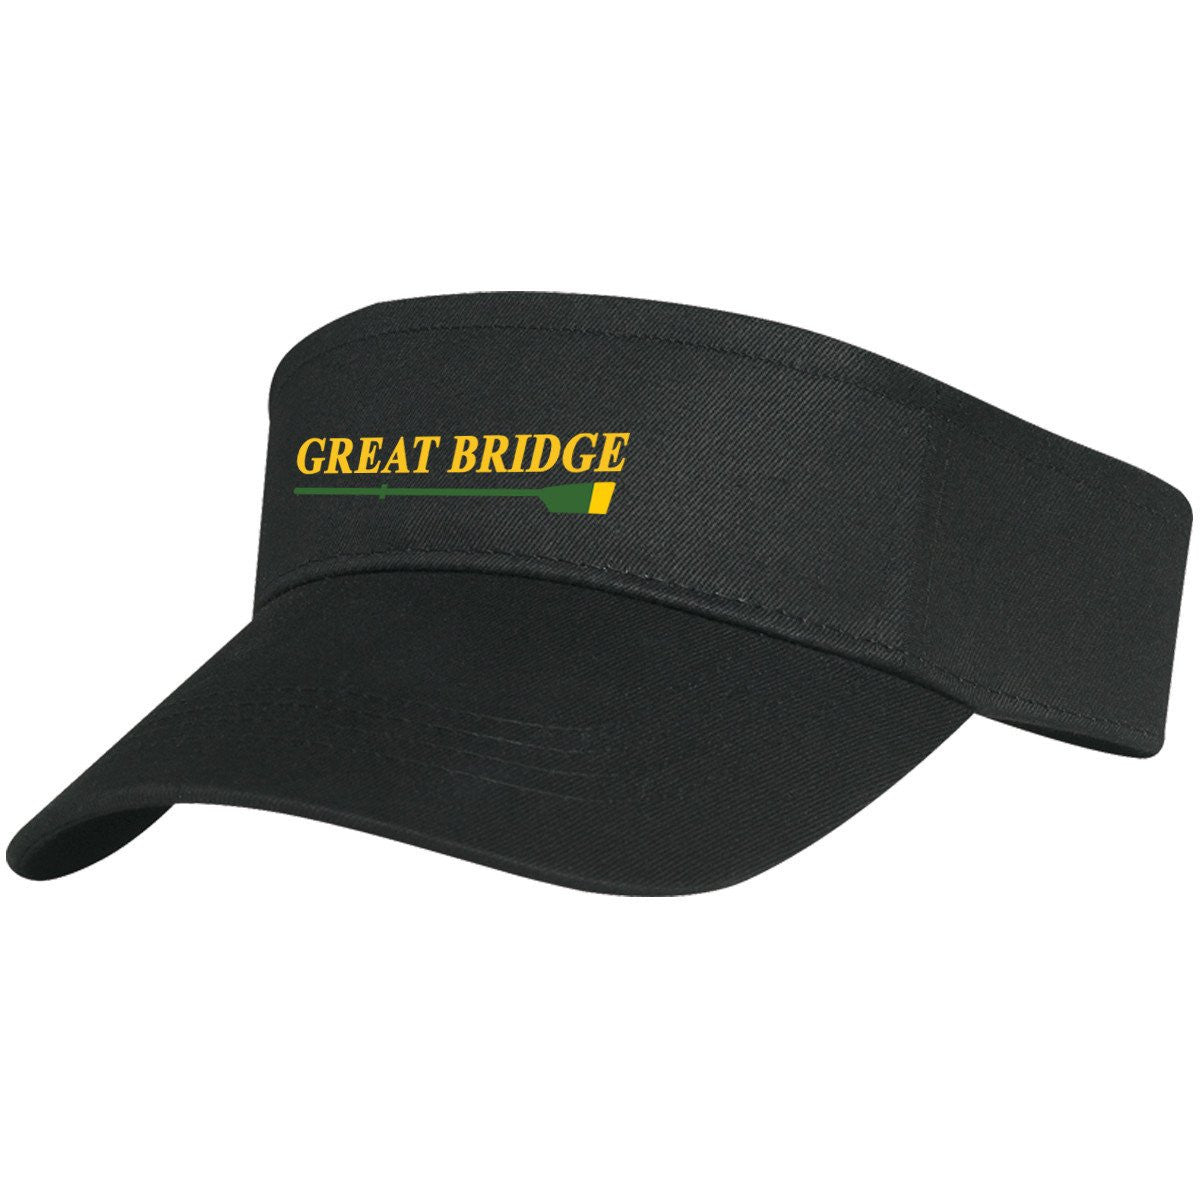 Official Great Bridge Crew Cotton Twill Visor